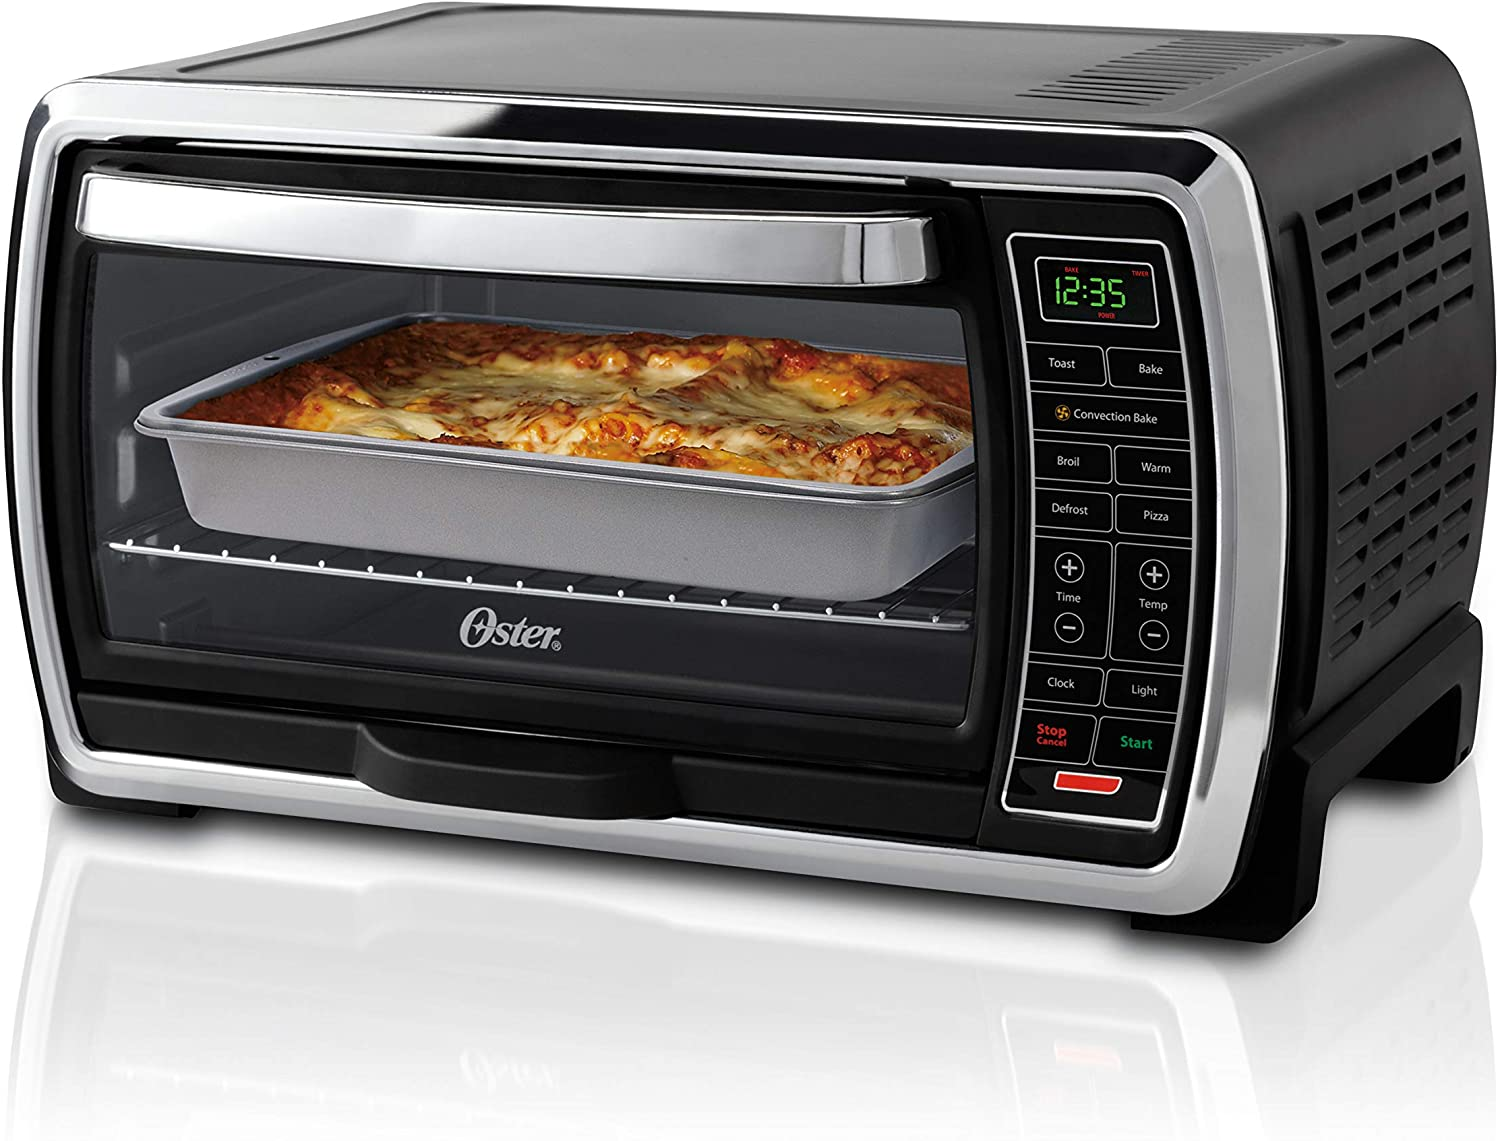 Amazon.com: Oster Toaster Oven | Digital Convection Oven, Large 6-Slice  Capacity, Black/Polished Stainless: Kitchen & Dining